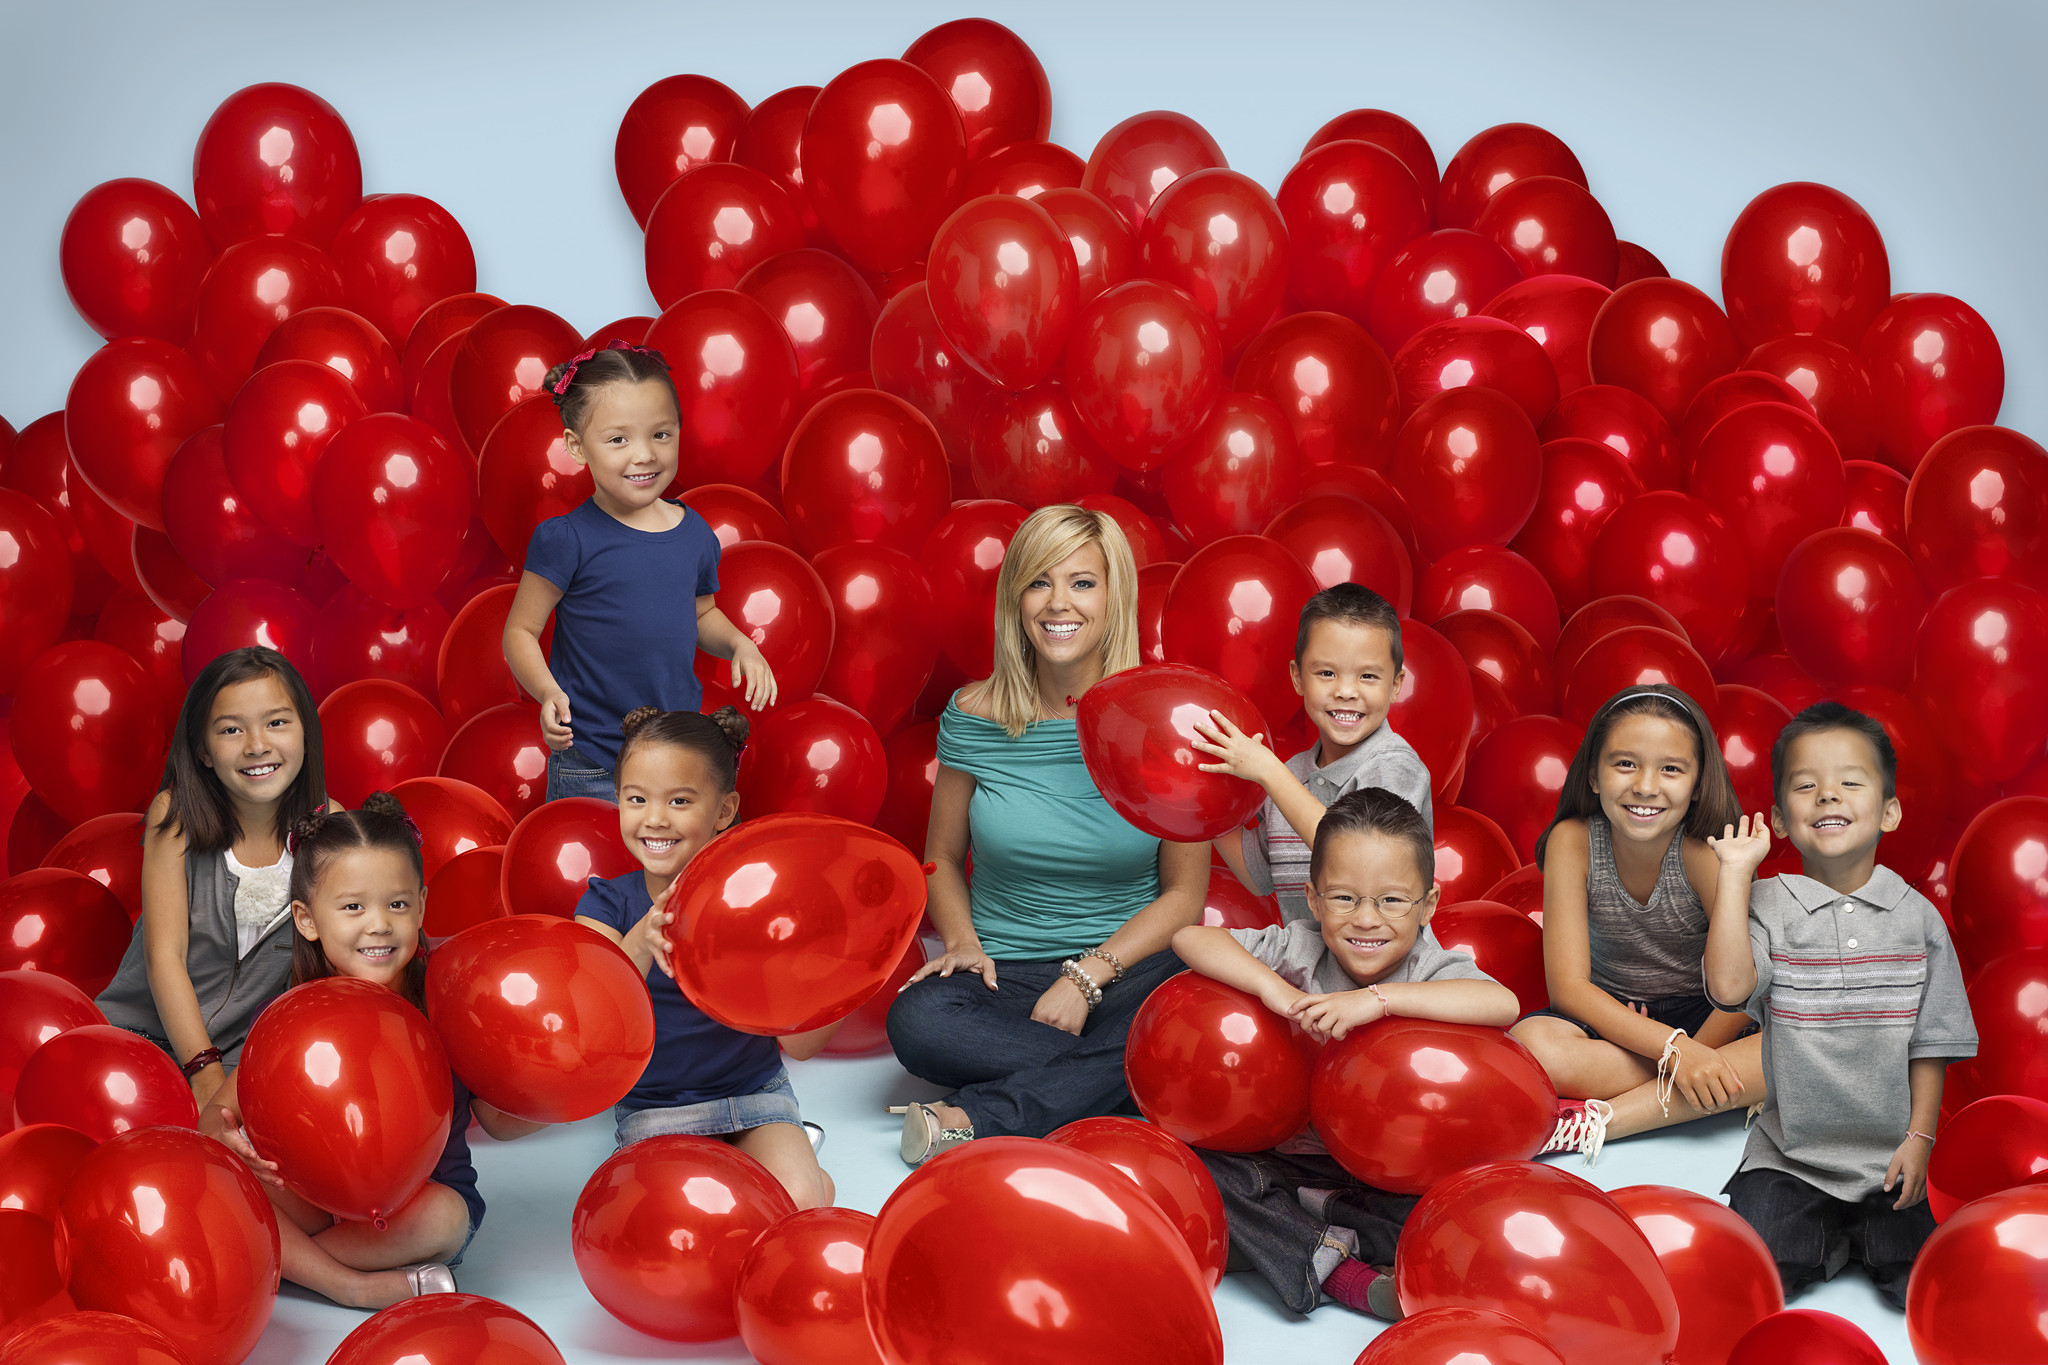 Kate Gosselin Turns 40 In New Episode Of Quot Kate Plus 8